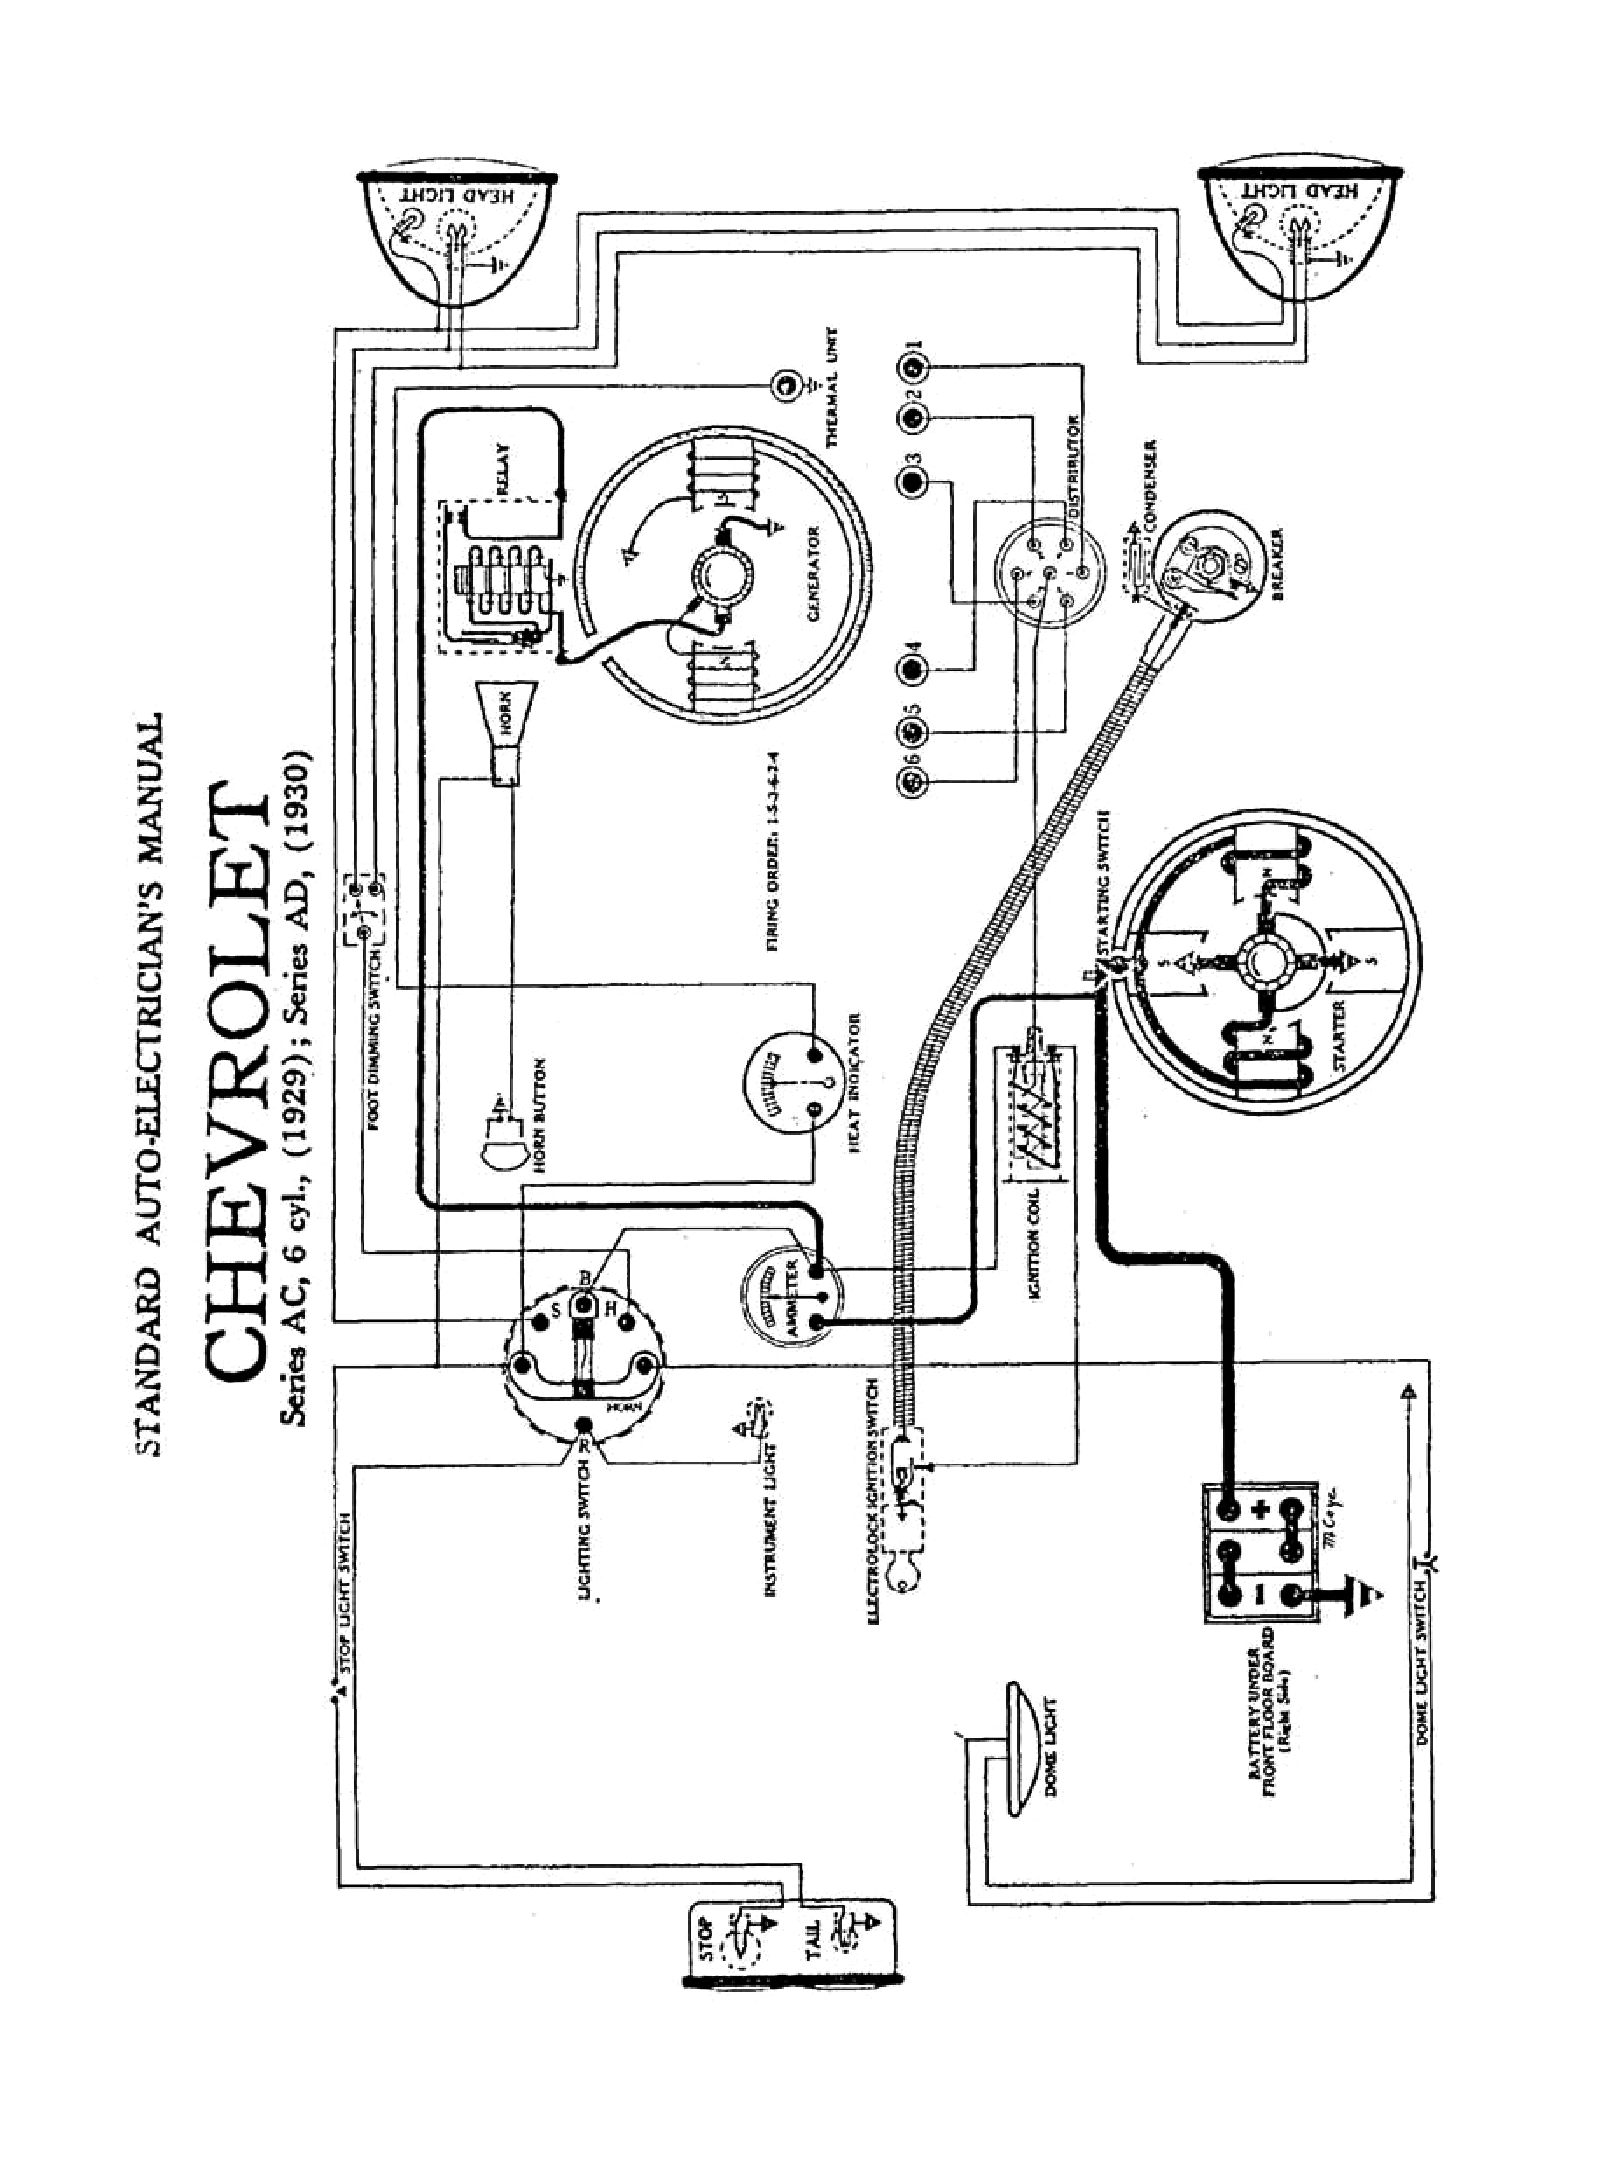 1978 Chevrolet Engine Diagram | Wiring Liry on